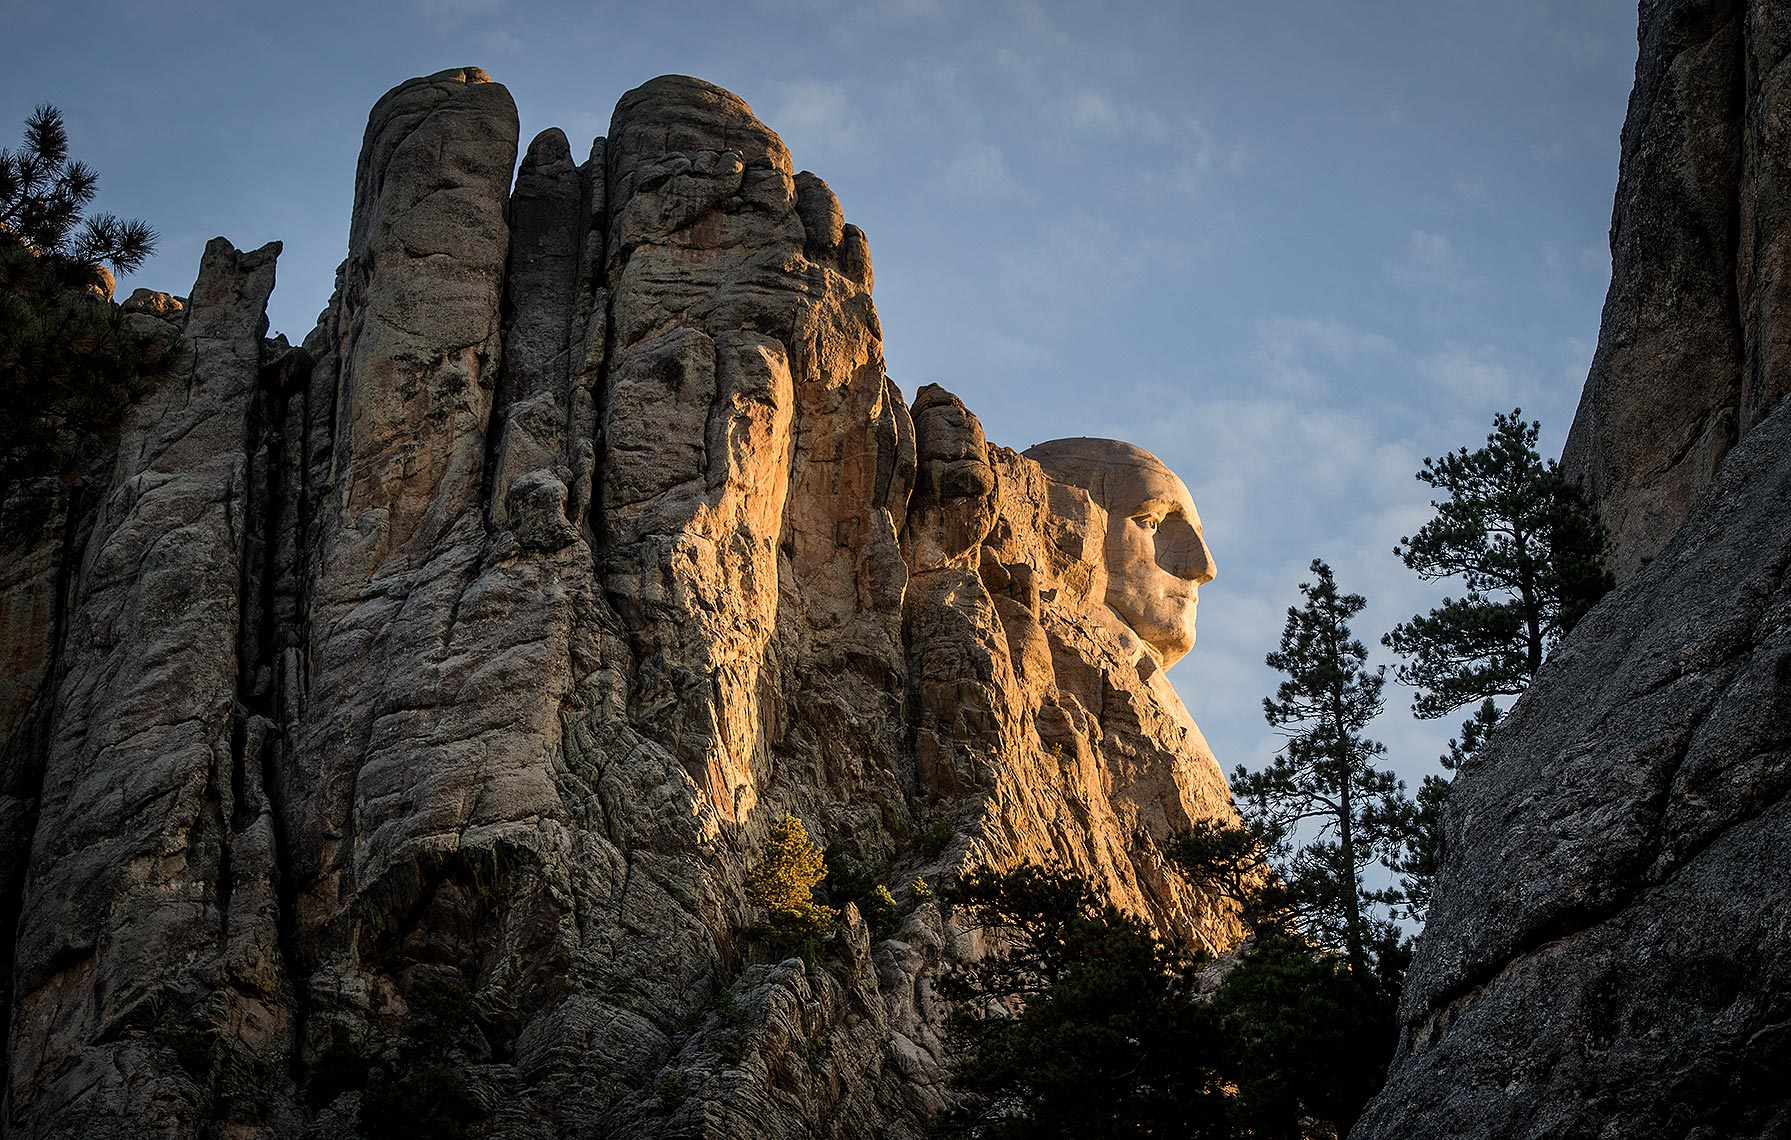 Mount Rushmore Photography